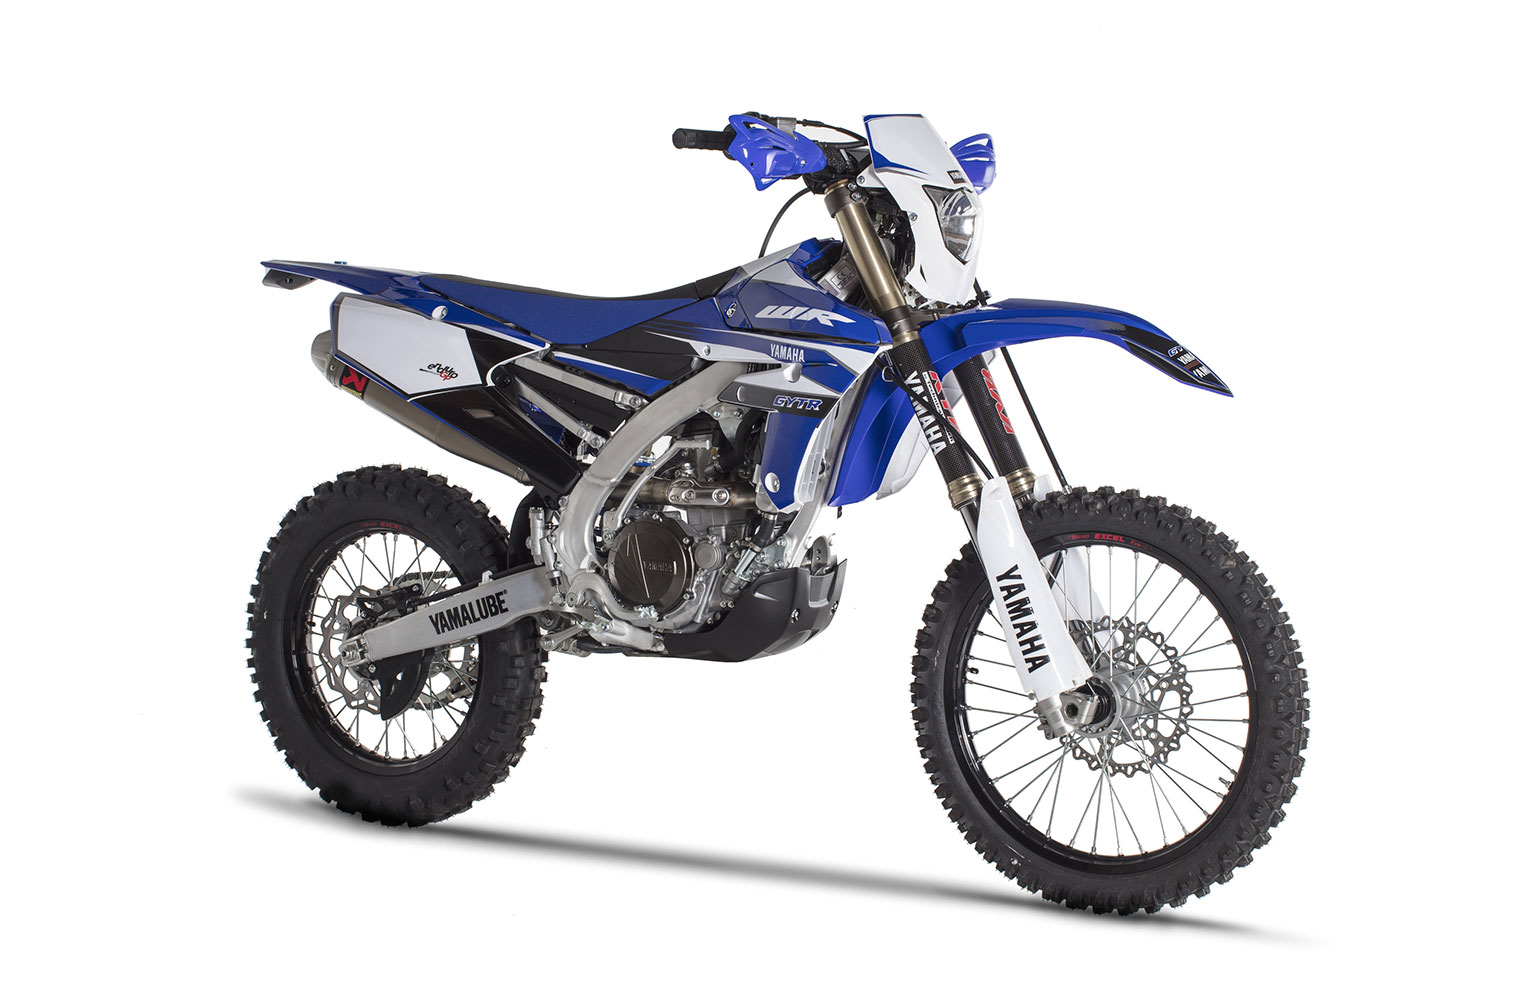 limited edition yamaha enduro bikes unveiled motohead